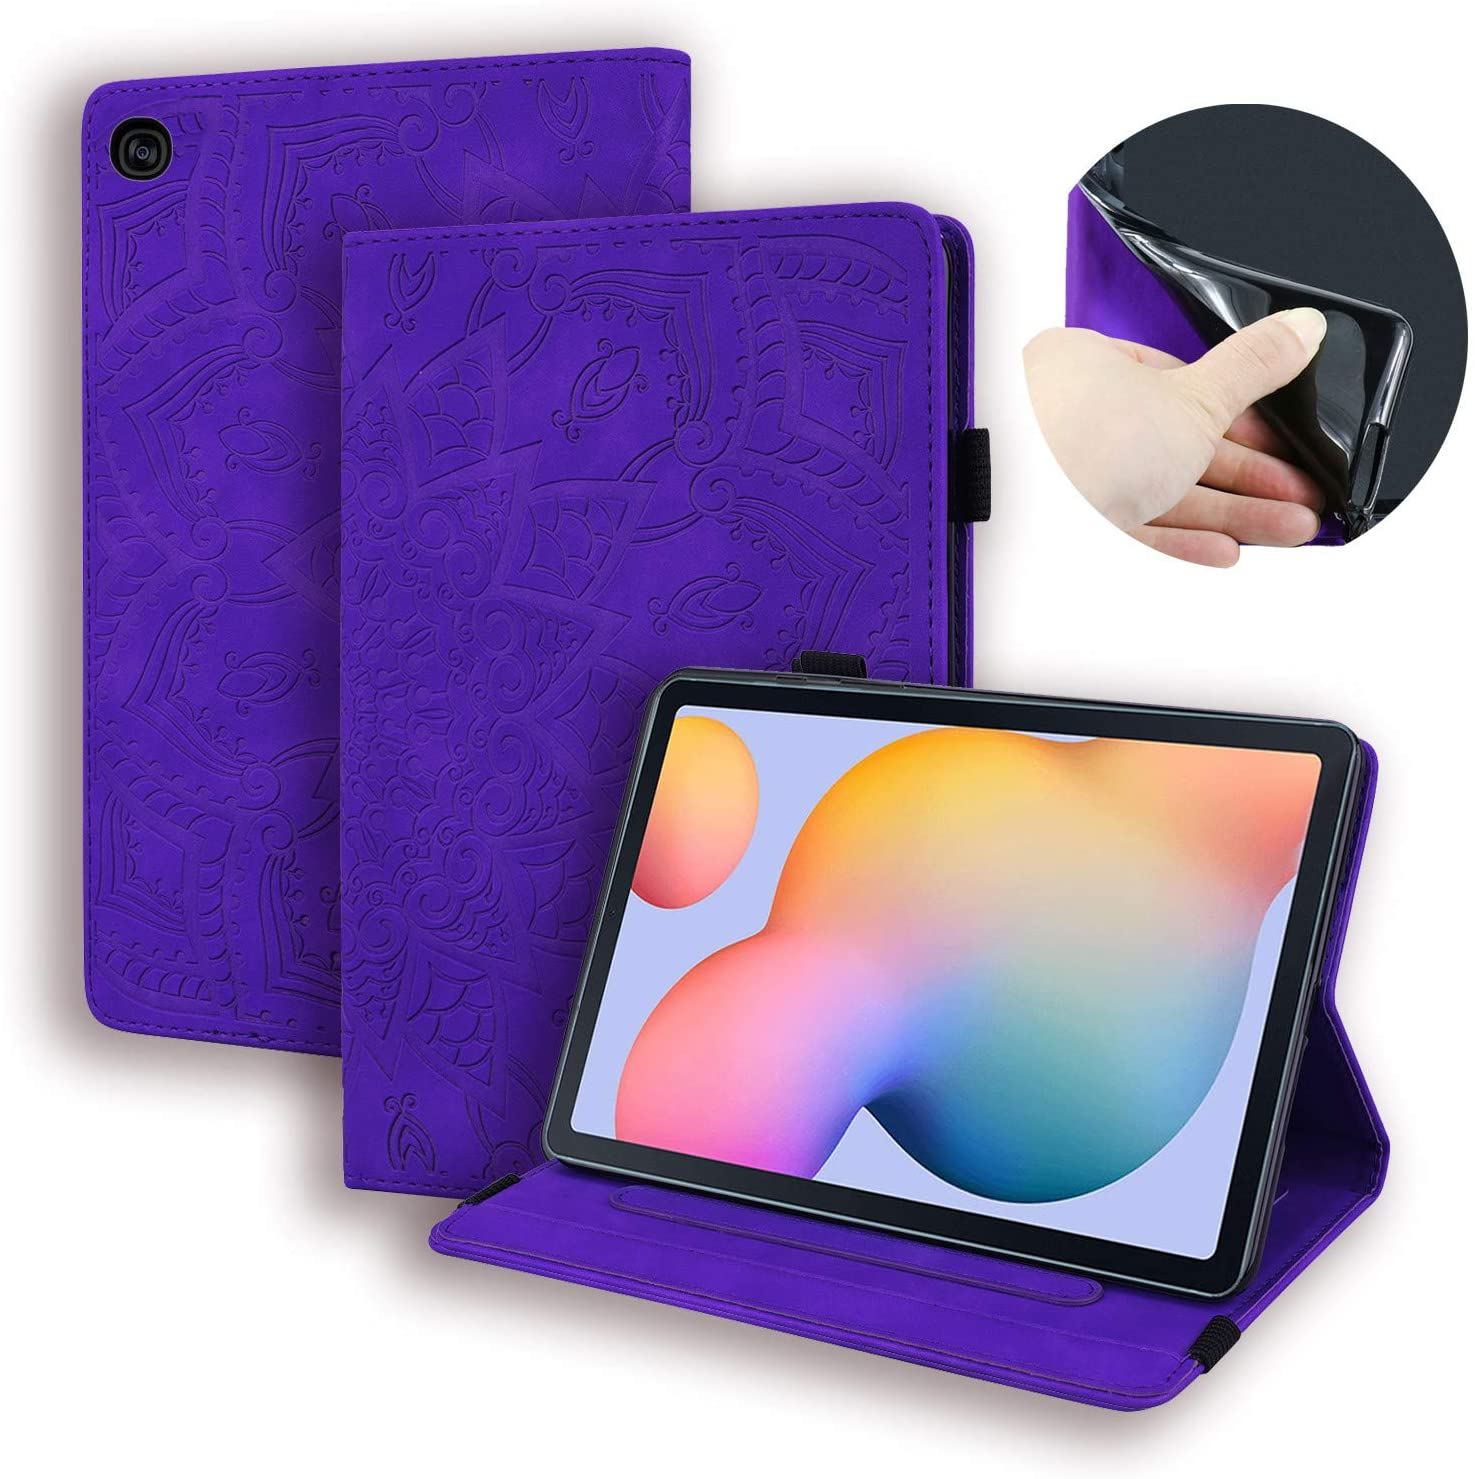 USTY Samsung Galaxy Tab S6 Lite Case SM-P610 - Slim Folio Stand Flower Pattern Premium Leather Magnetic Cover with Card Holders for Galaxy Tab S6 Lite 10.4 Tablet SM-P610/P615 2020, Purple